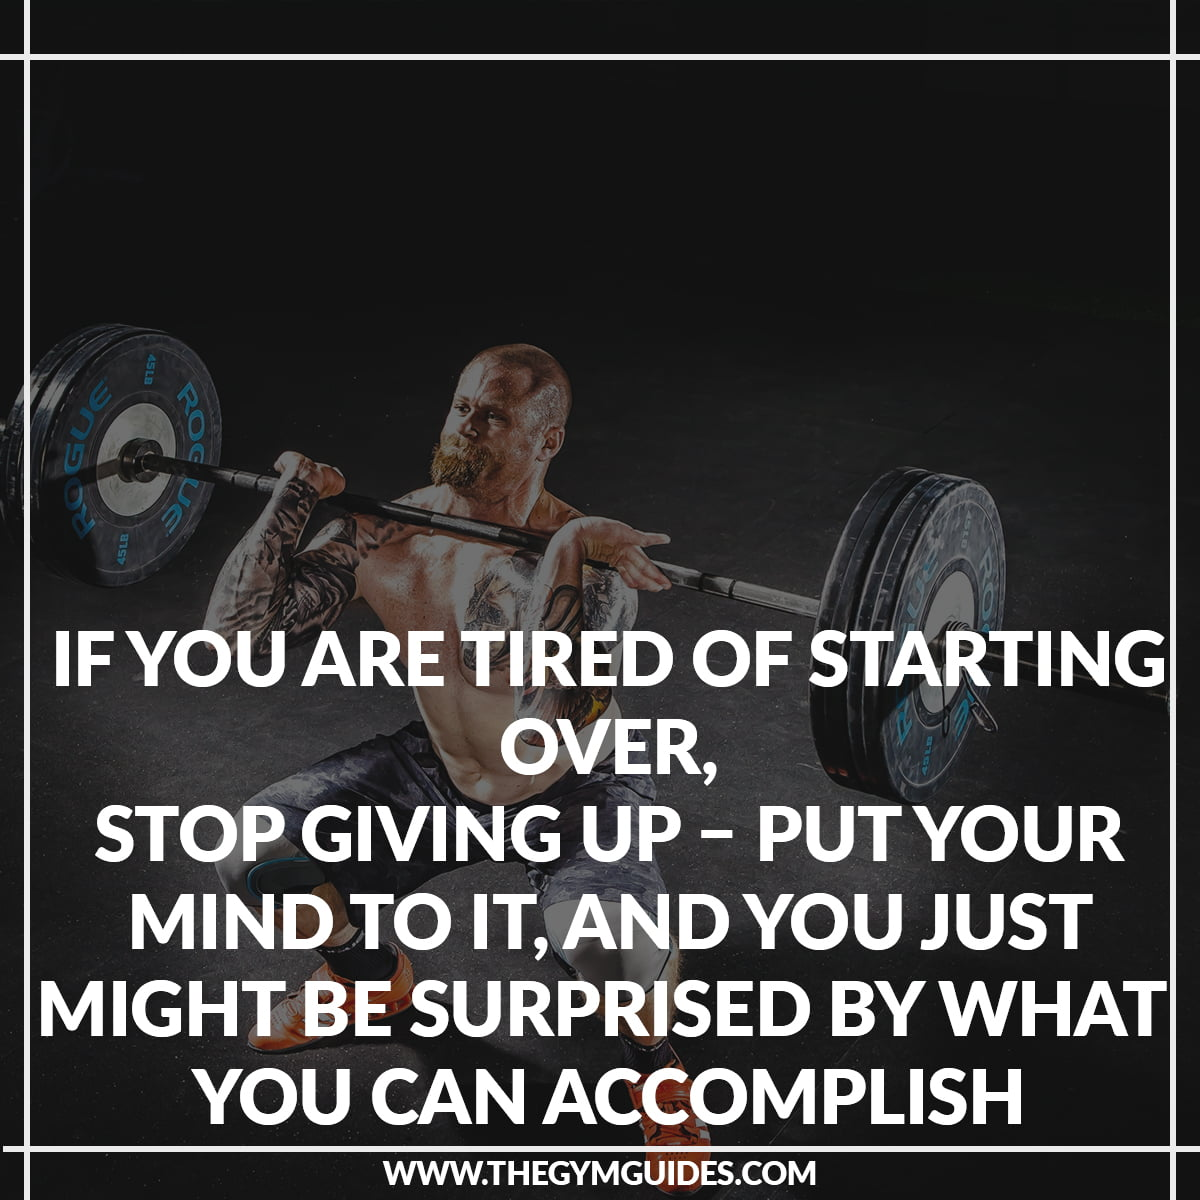 if you are Tired of Starting Over, Stop Giving Up – put your mind to it, and you just might be surprised by what you can accomplish